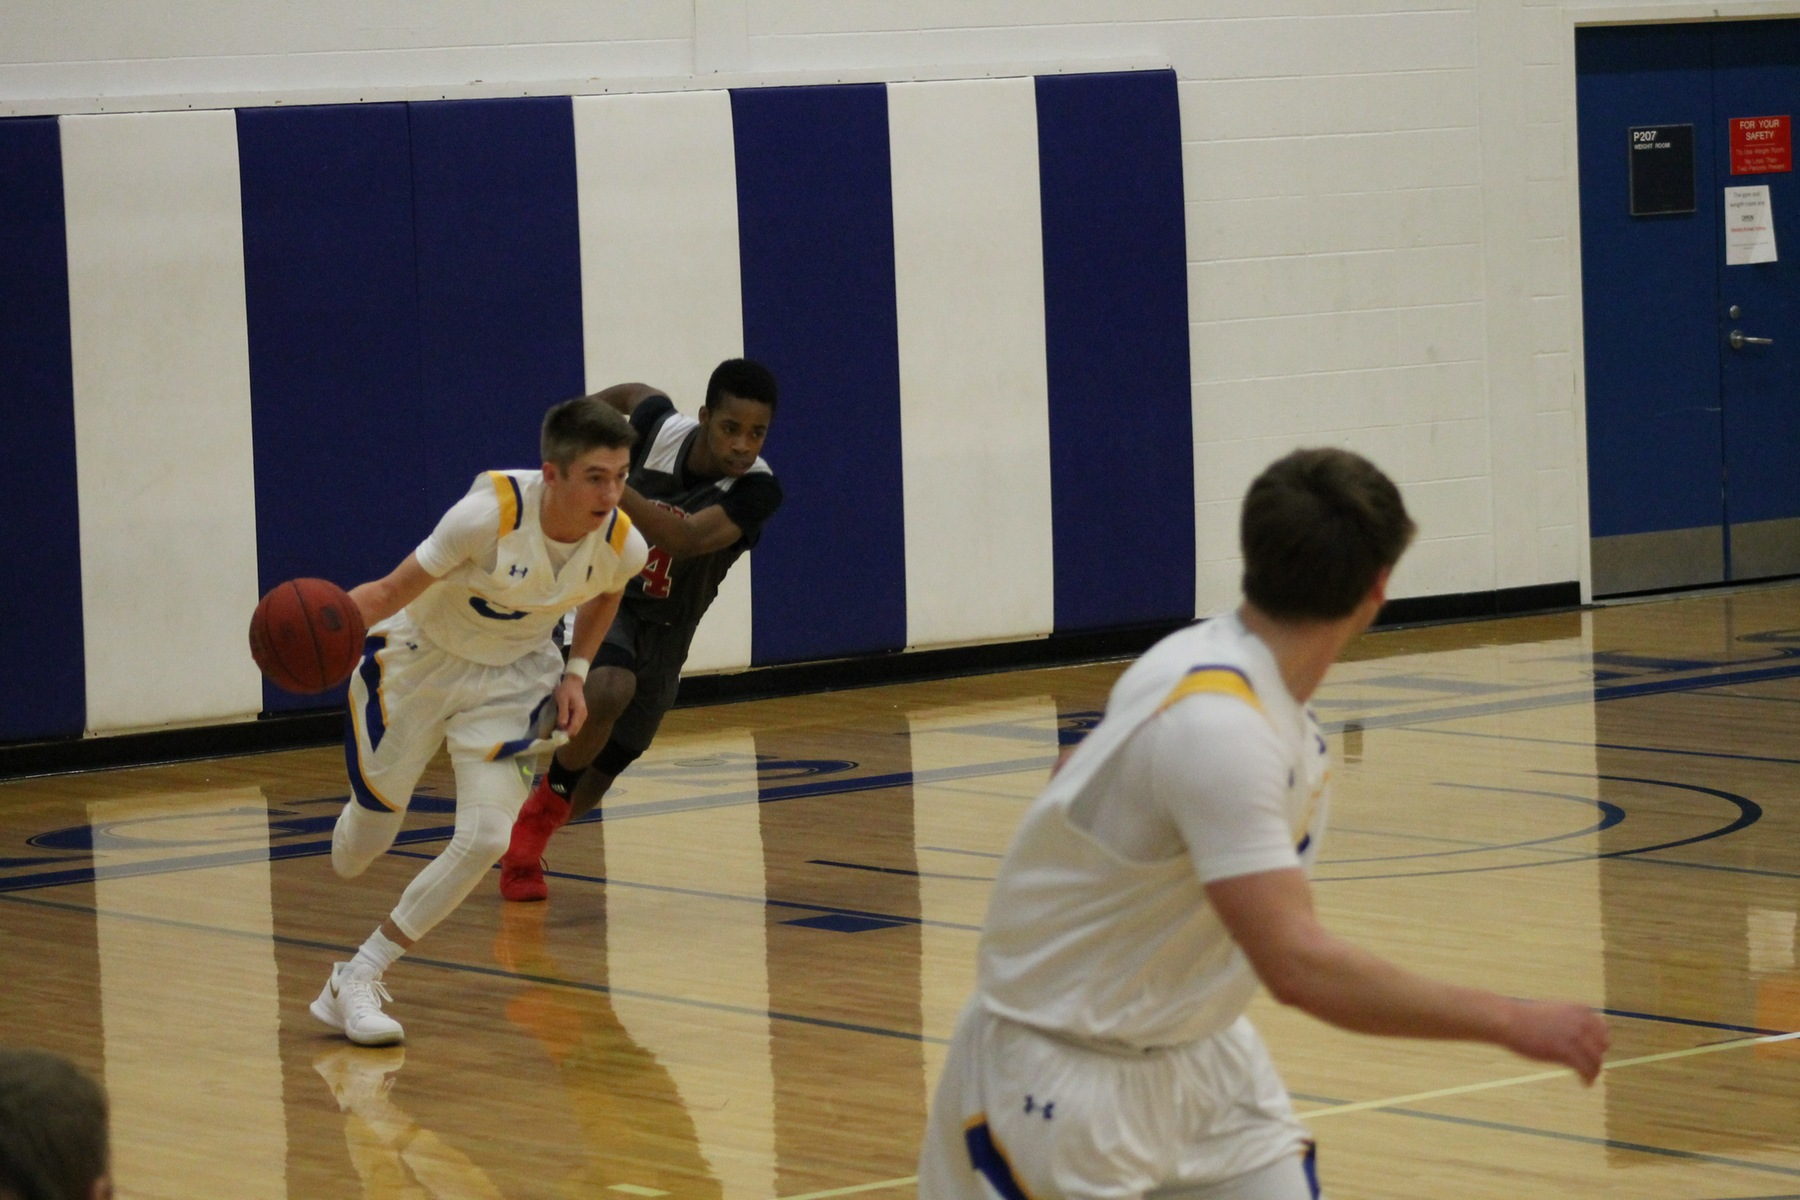 Miller Leads Spartans against Hibbing